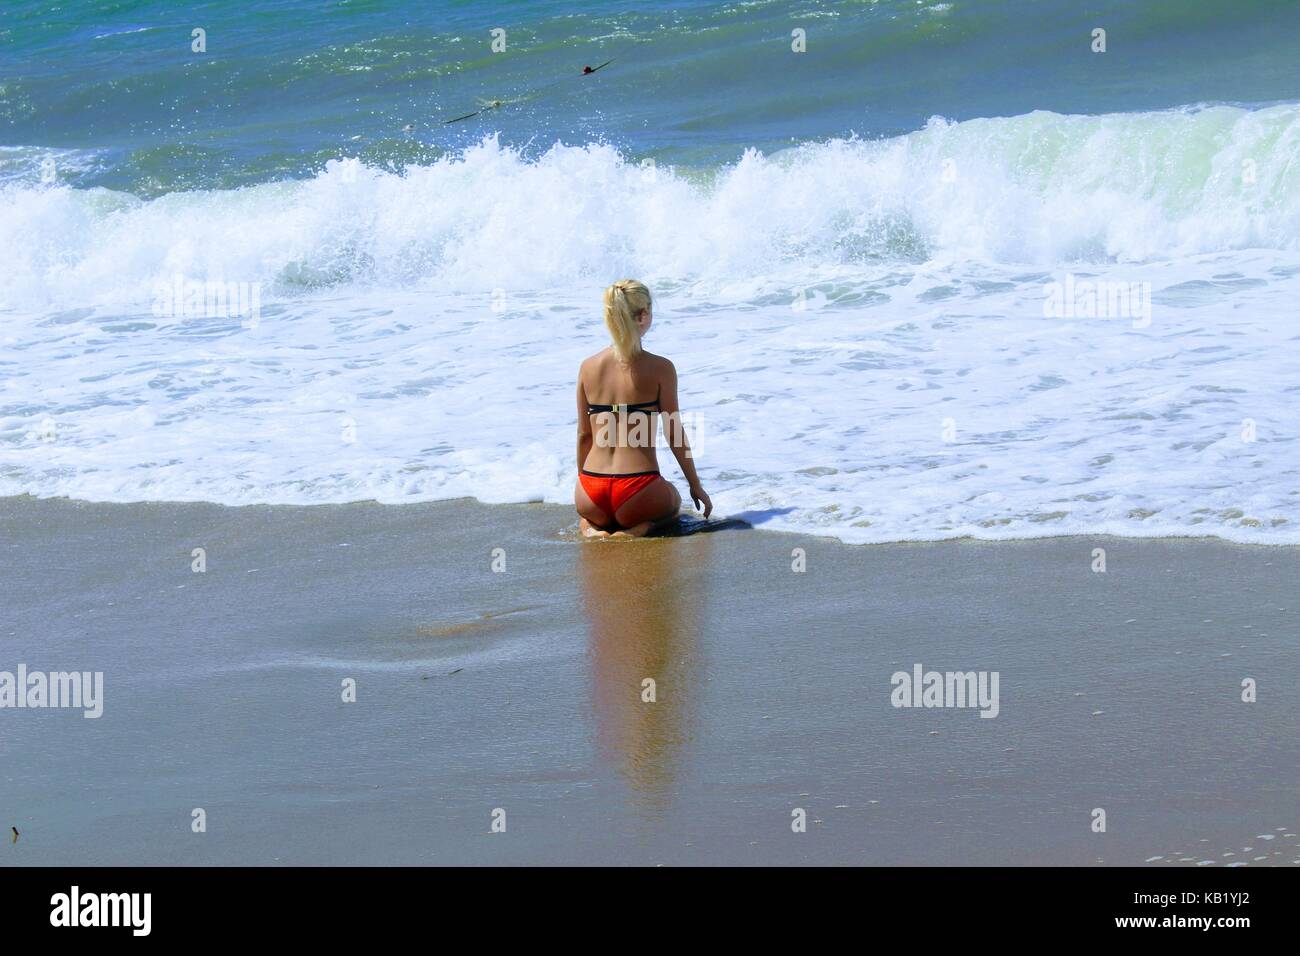 July, 2017 - A woman in a red swimsuit in the surf on the seashore at Cleopatra Beach (Alanya, Turkey). - Stock Image